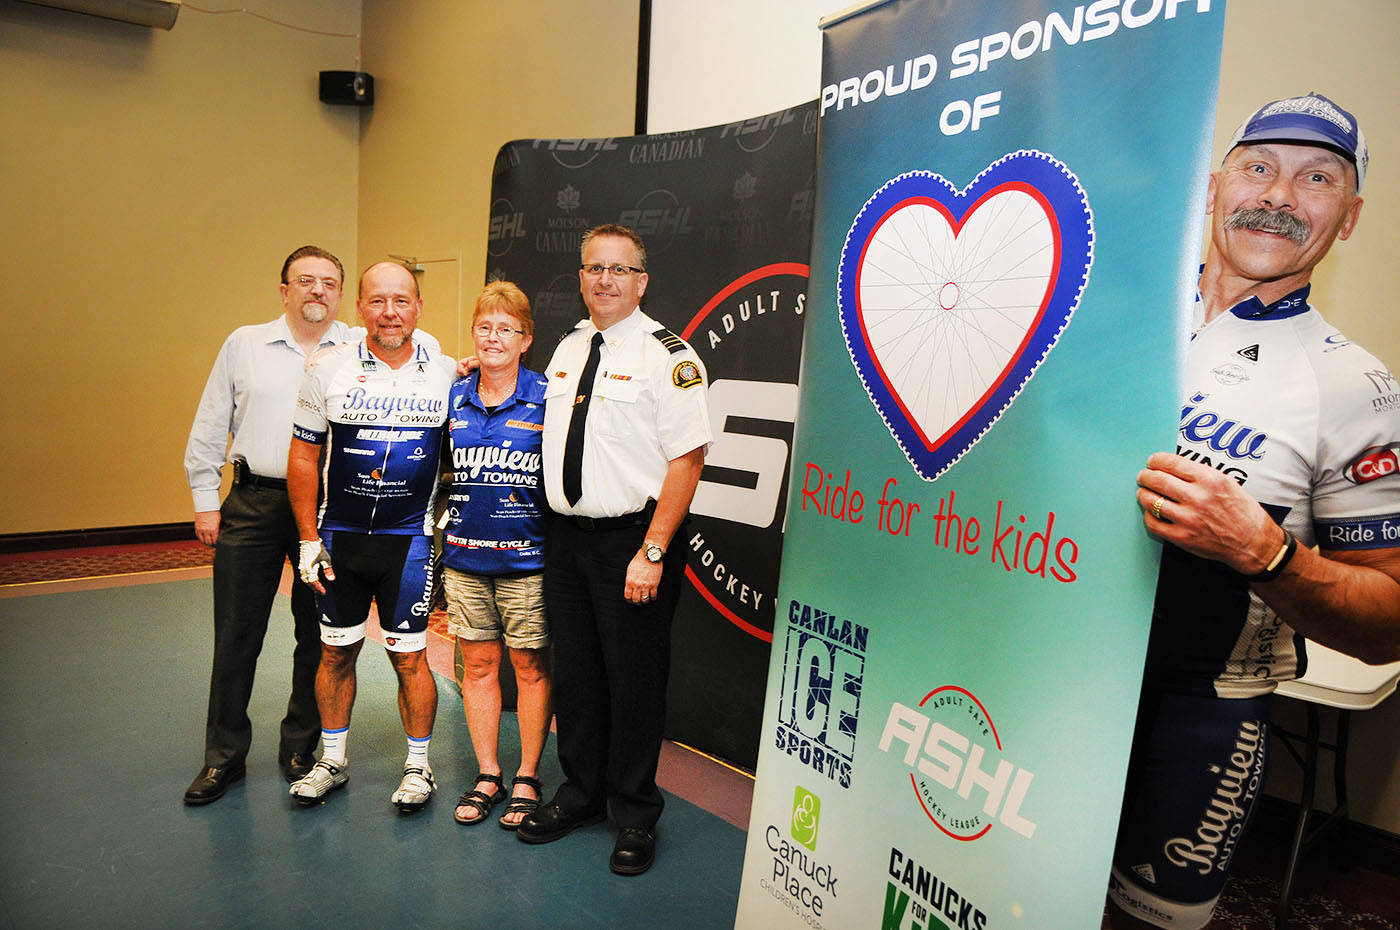 Supporting or taking part in this year's Ride for the Kids benefiting Canuck Place Children's Hospice are, left to right, Anthony Munroe, Rob Neufeld, Cheryl Lydynuik, Monty Armstrong, and Jeff Bandura. The 165 km cycling fundraiser begins and ends at Langley Twin Rinks on Wednesday, July 12. Troy Landreville Langley Times